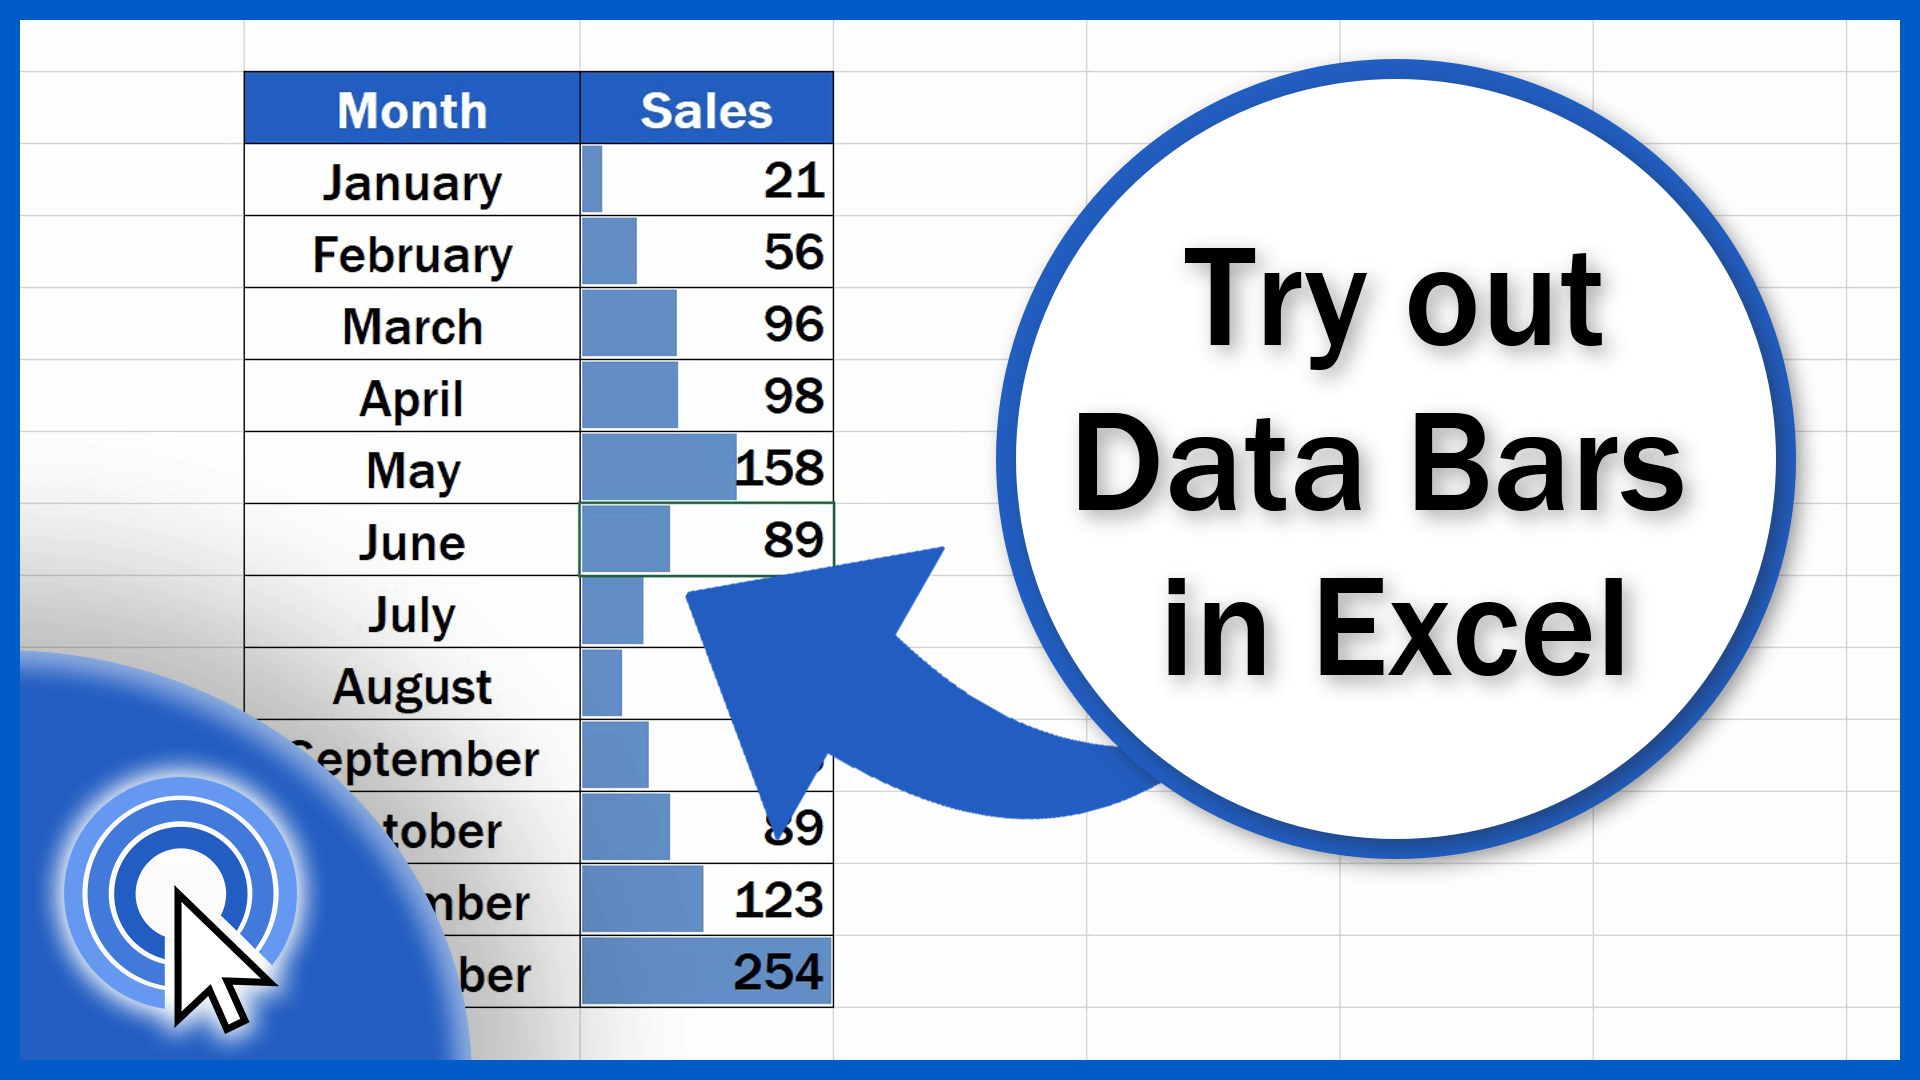 Try out Data Bars in Excel to See Your Data Visually